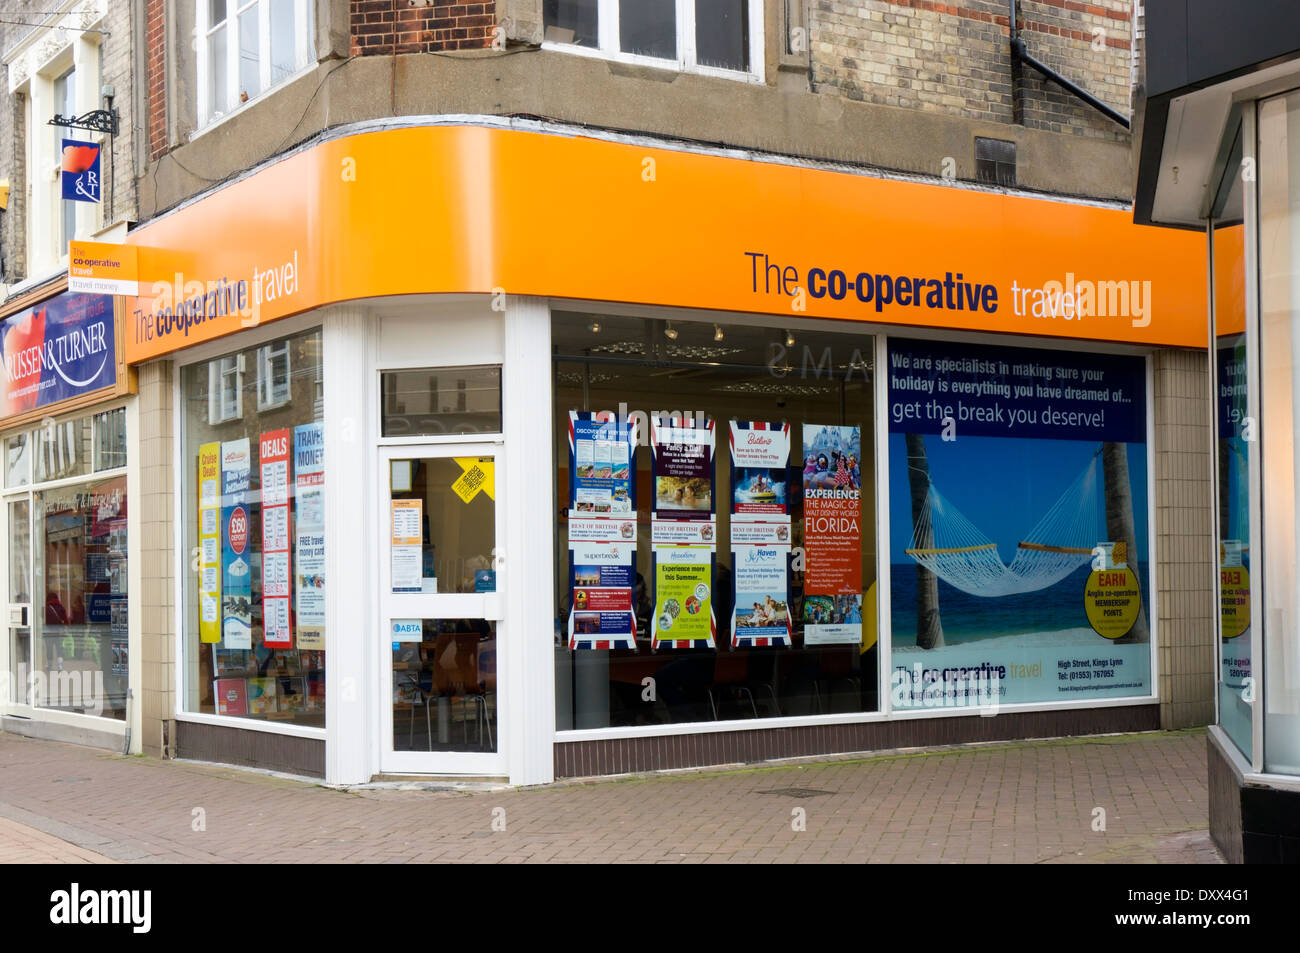 A branch of Co-operative travel agency in the High Street, King's Lynn, Norfolk. - Stock Image